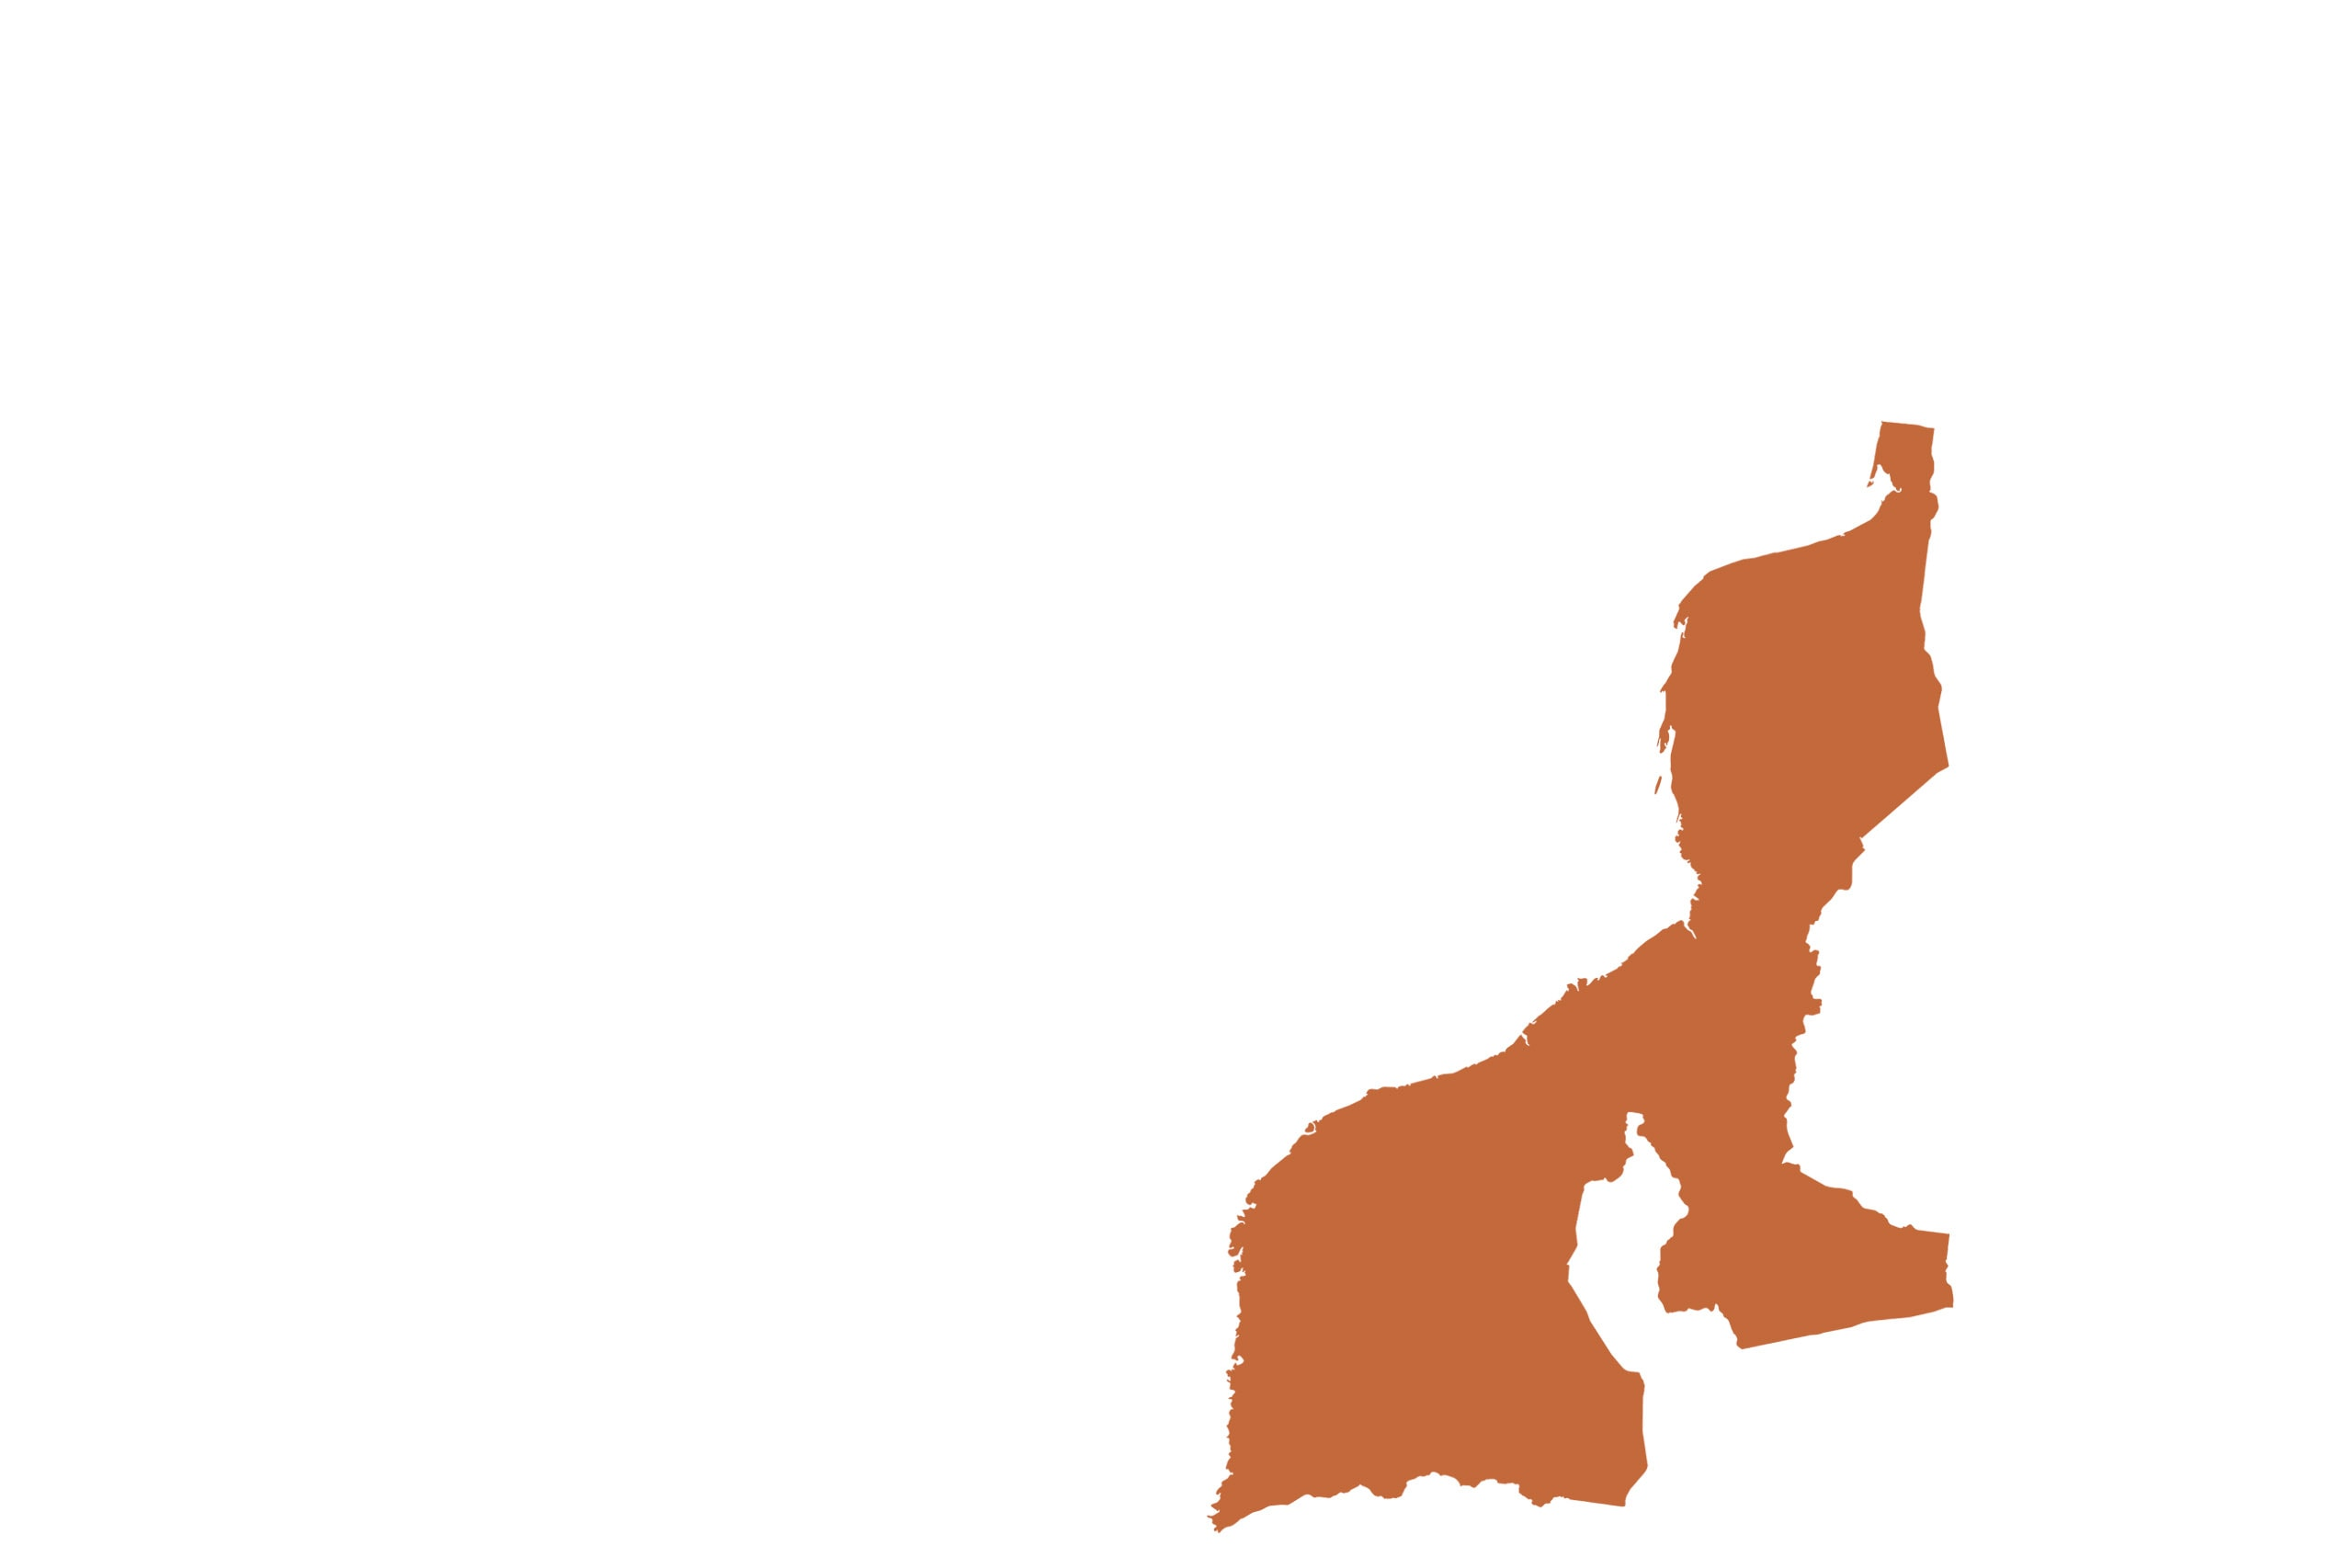 Mozambique map in orange from list of missing countries for 1 Earth City Portrait Photography Project aka NYChildren by Danny Goldfield.